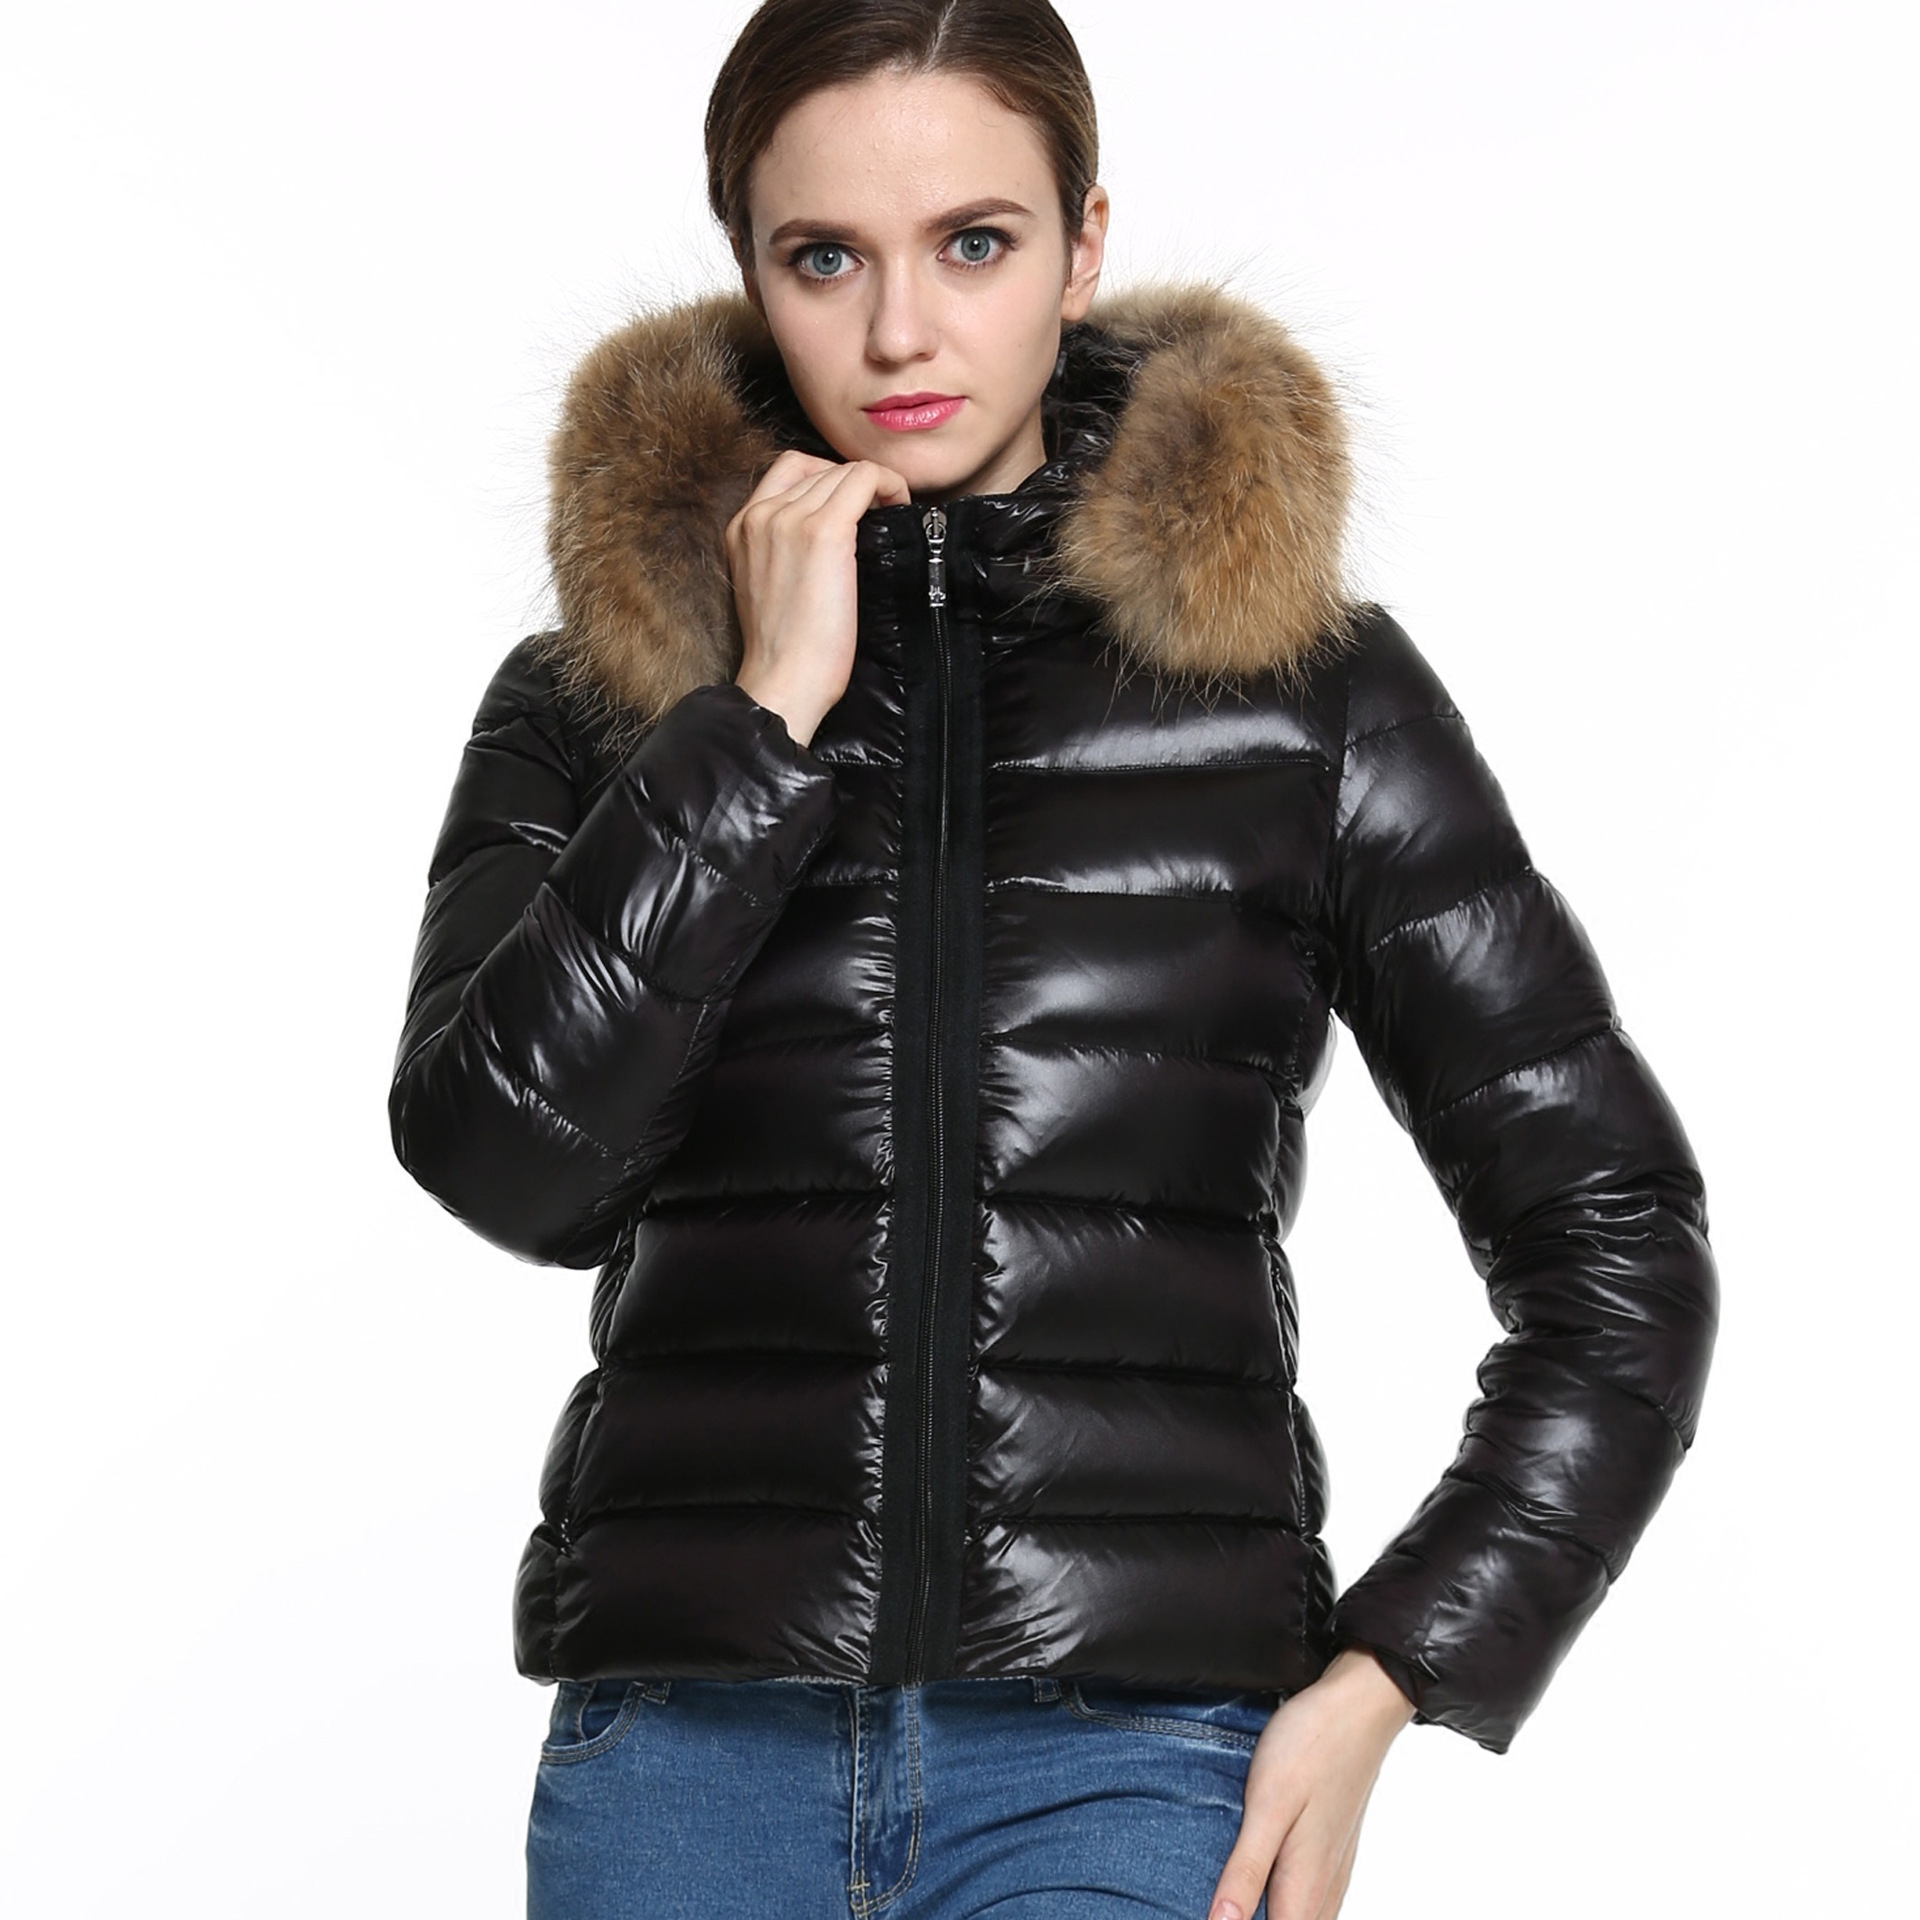 ФОТО 2016 Rushed Ukraine Winter New Listing Of Cotton-loving Hot-selling Women's Cotton-padded Warmth Of Thick Cotton Collar Women